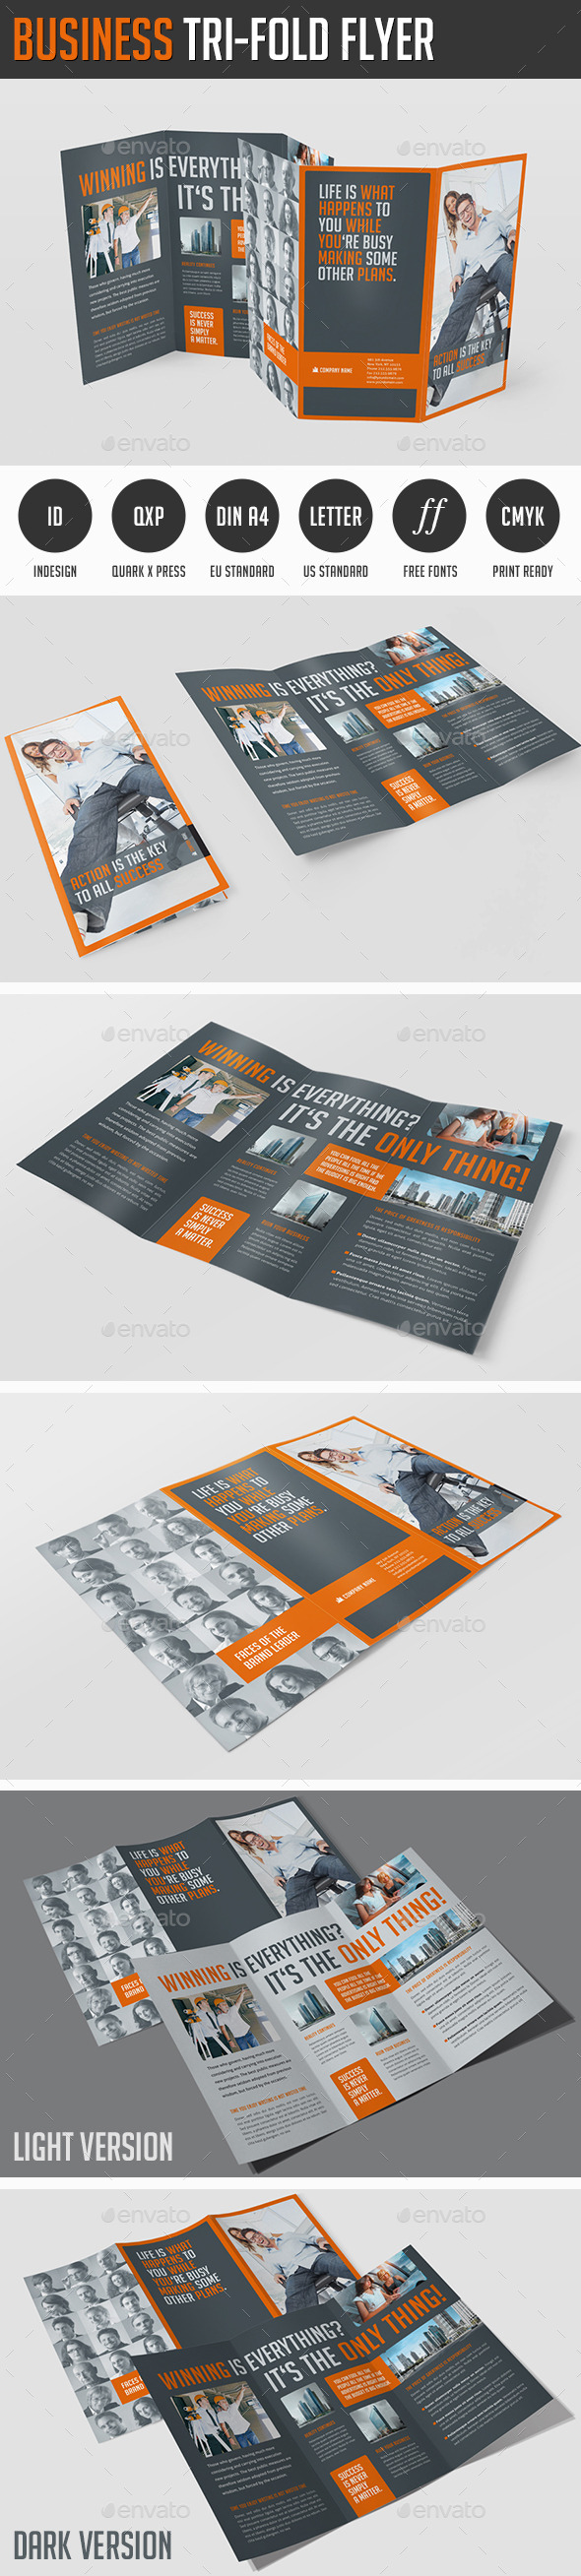 Business Tri-Fold Flyer - Corporate Brochures